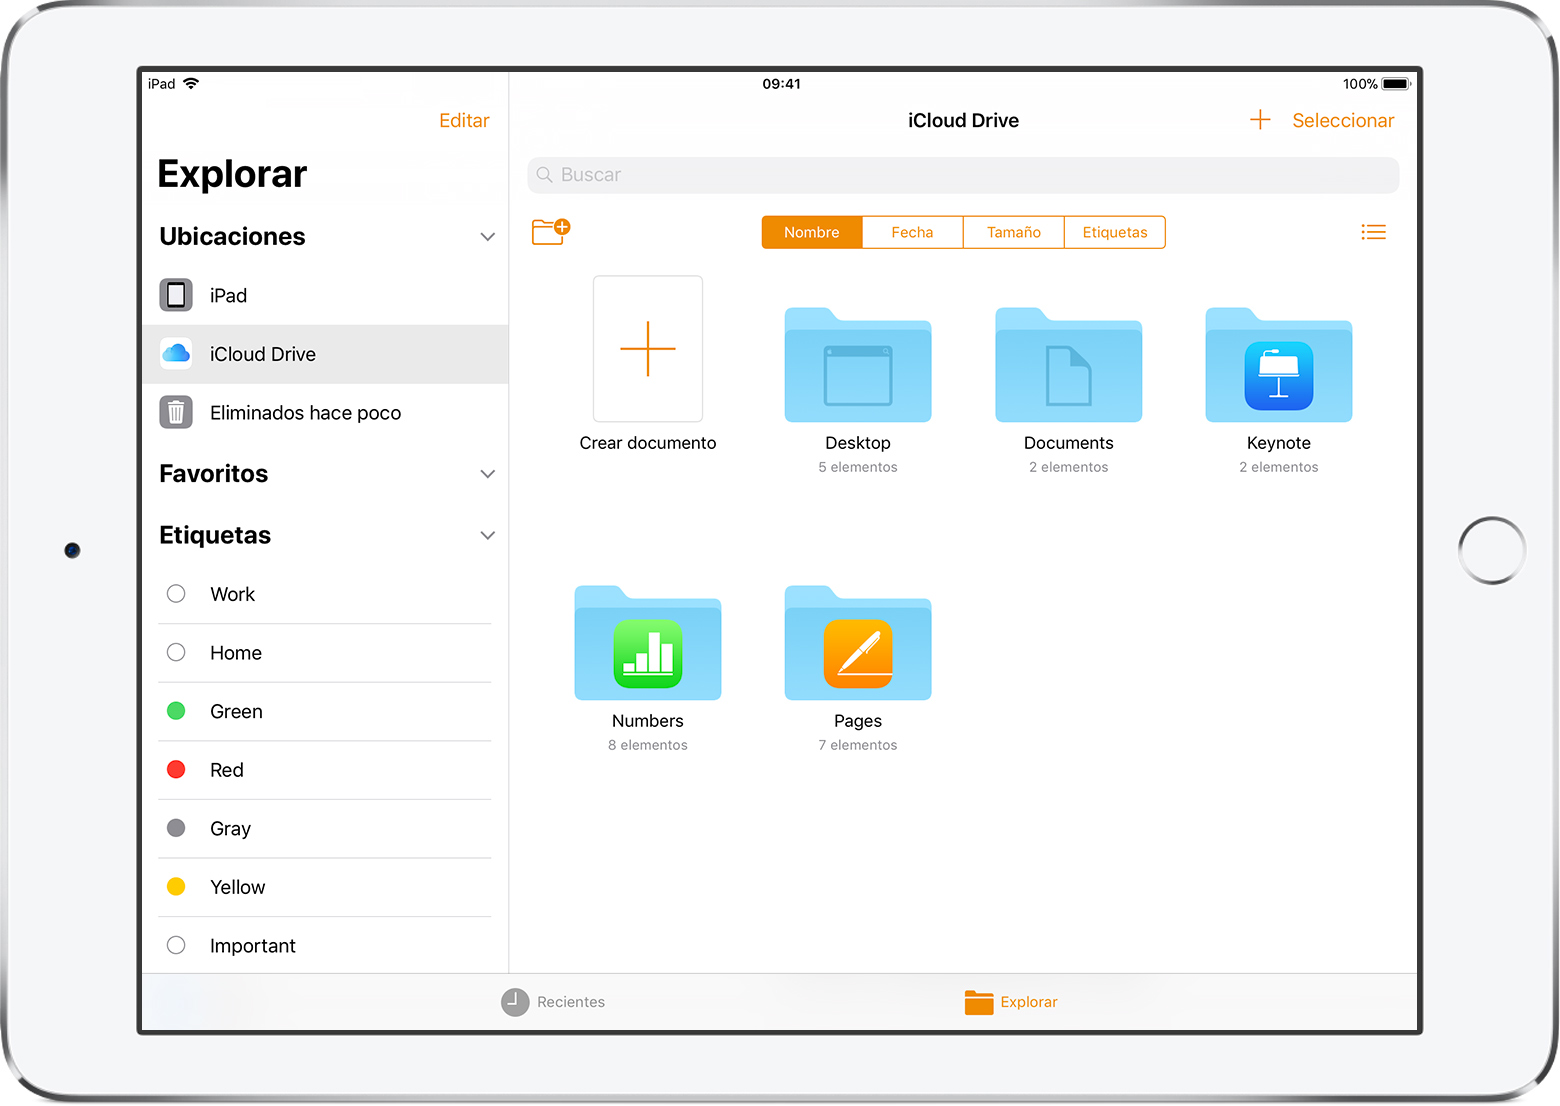 Organiza los documentos de Pages, Numbers y Keynote en el iPad